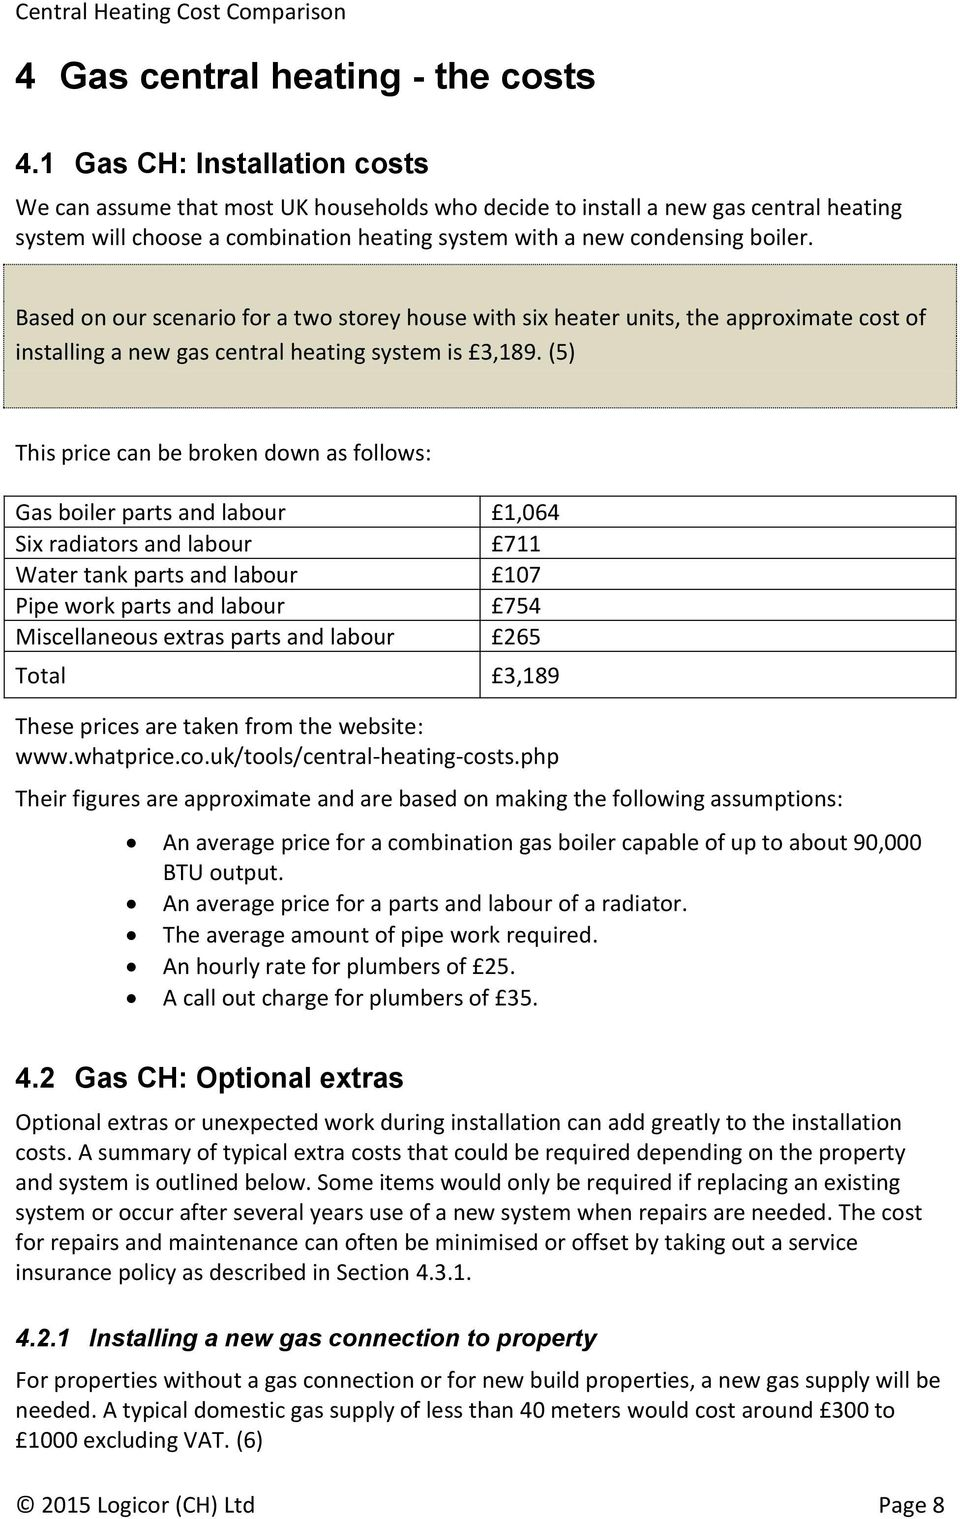 Central Heating Cost Comparison Pdf Average Of Rewiring A Terraced House Based On Our Scenario For Two Storey With Six Heater Units The Approximate